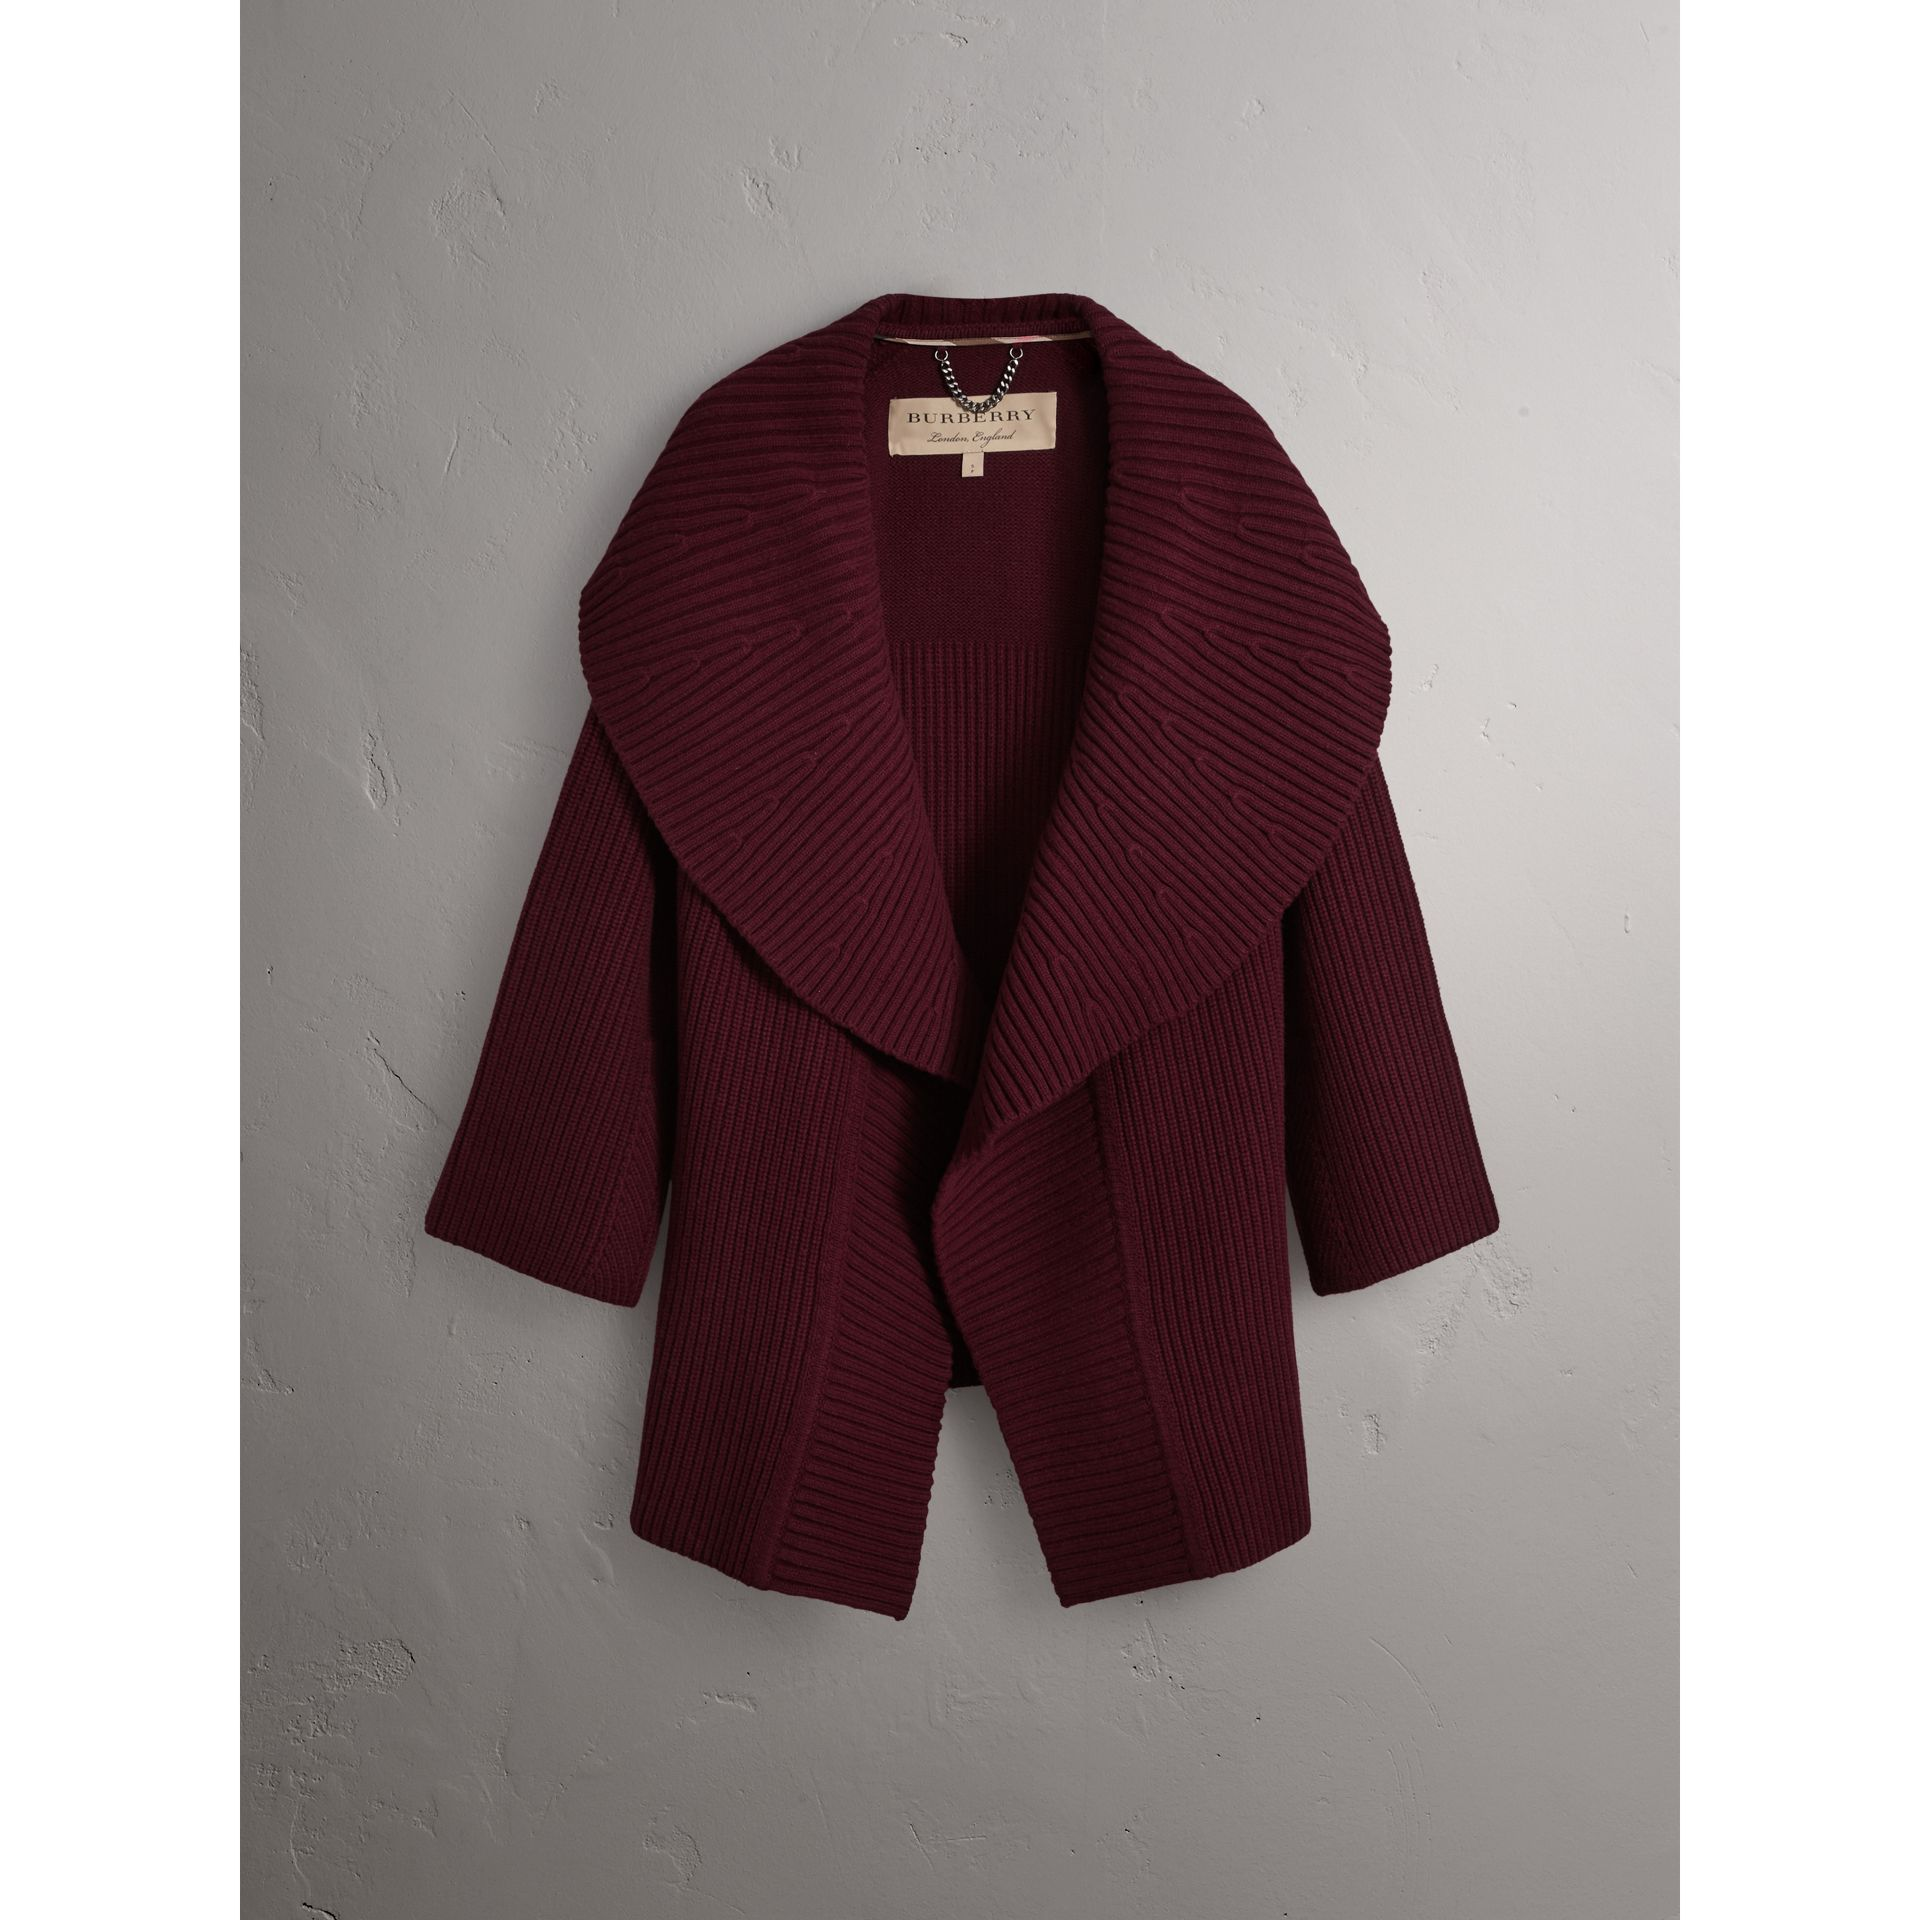 Ribbed Wool Cashmere Cardigan Coat in Burgundy - Women | Burberry United Kingdom - gallery image 4